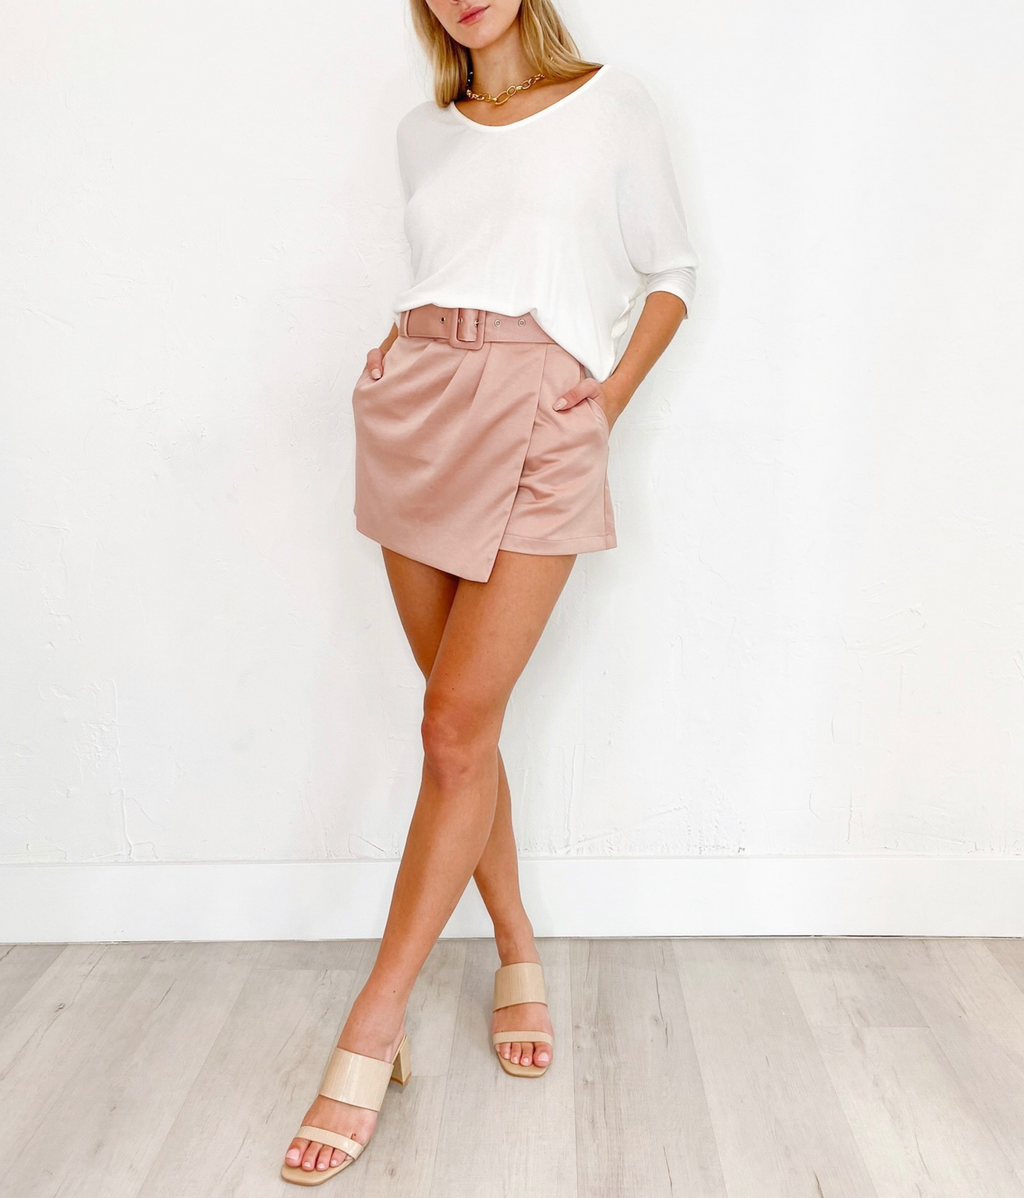 Cullen Shorts in Mauve